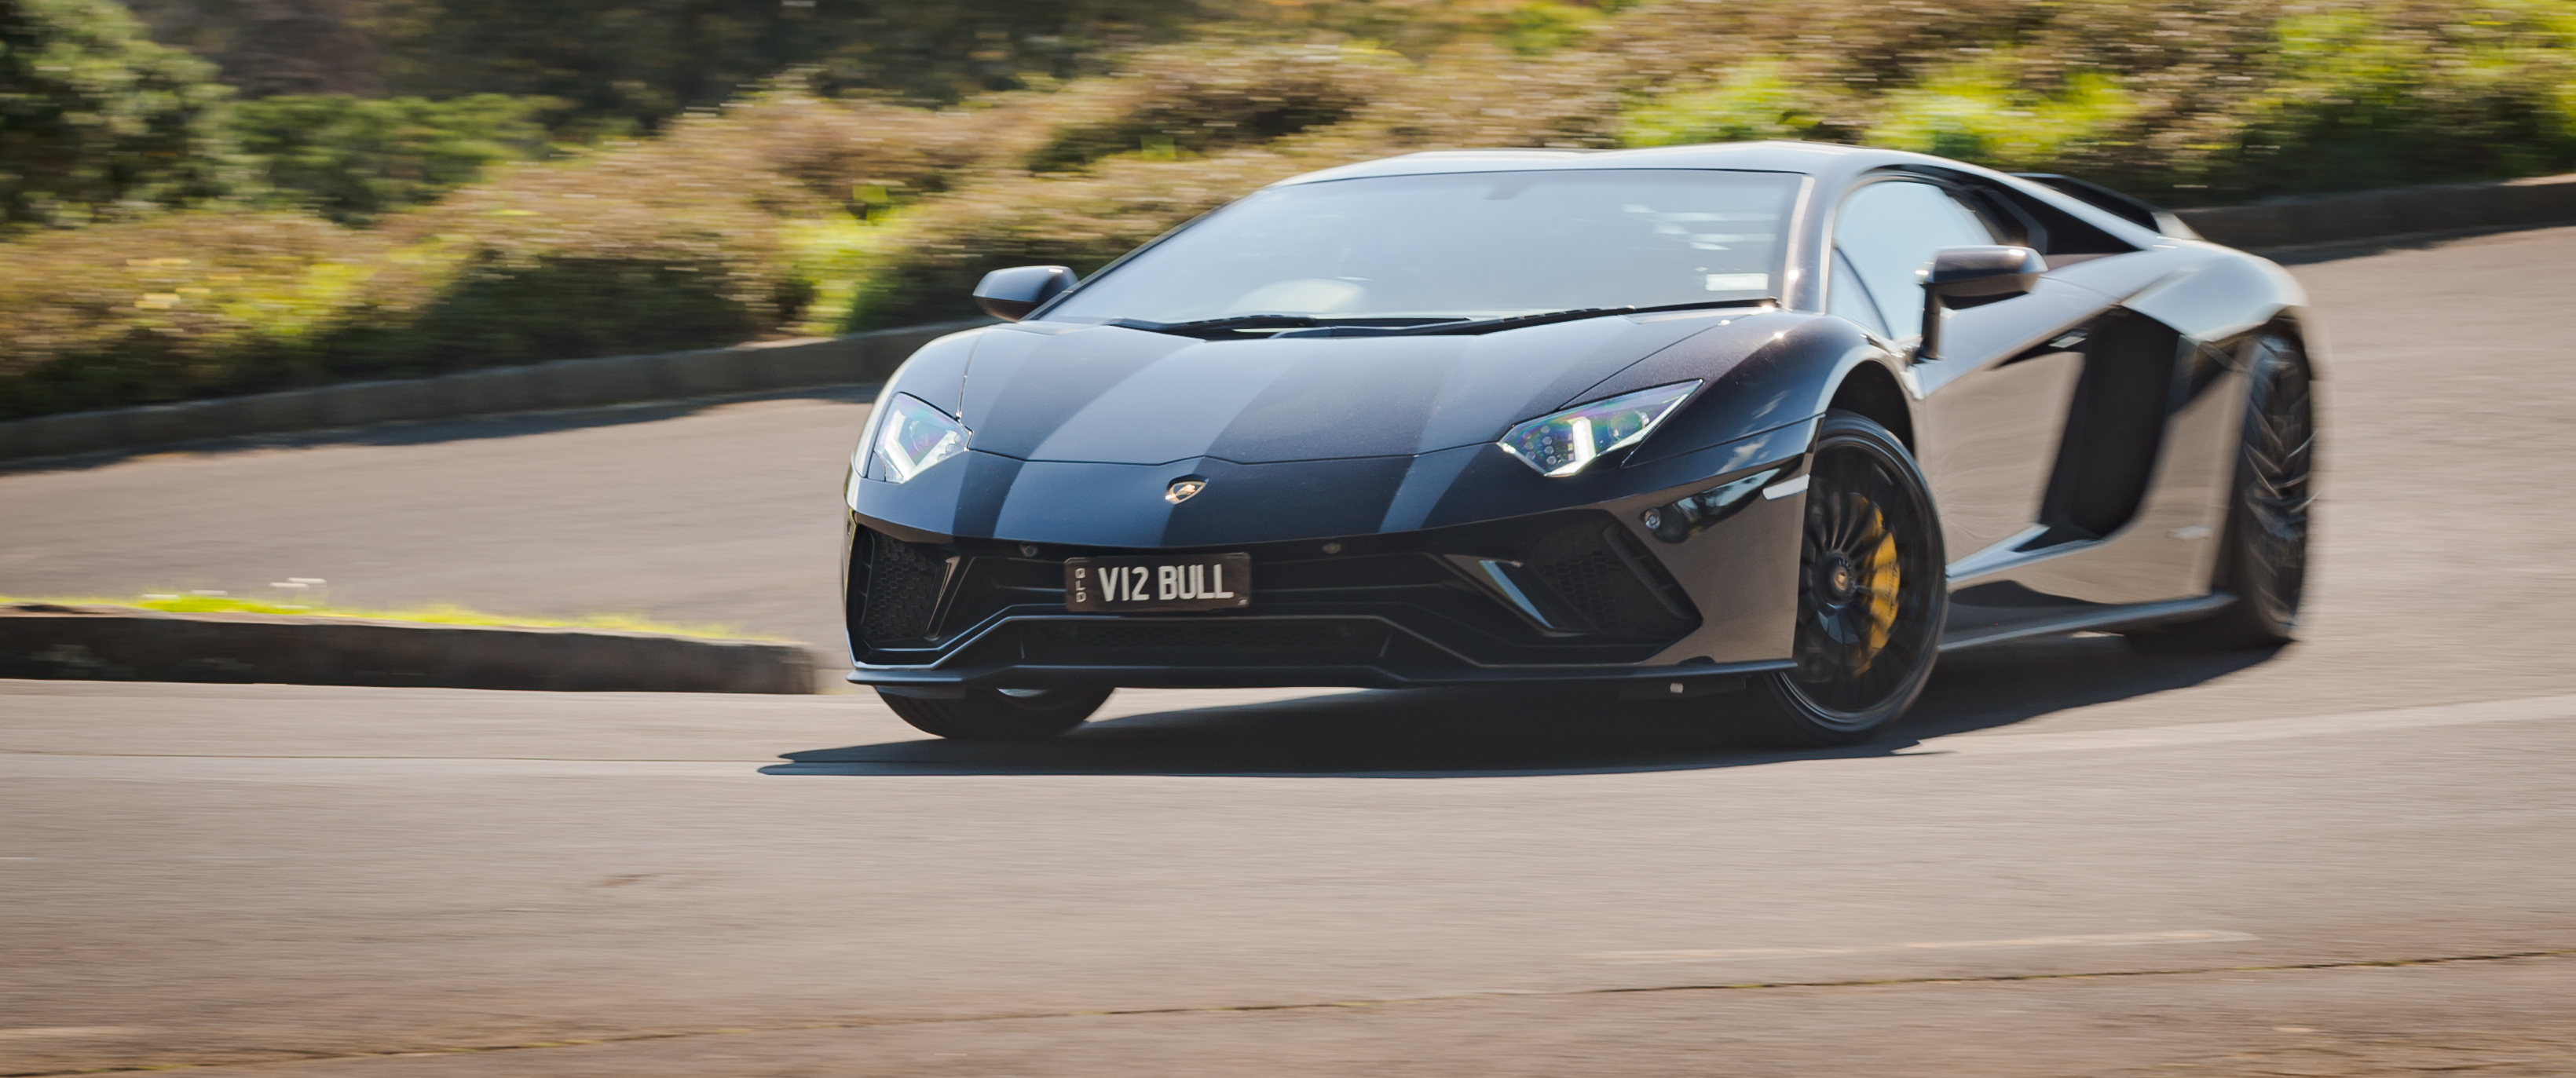 Lamborghini S 600k Aventador S Lands In New Zealand Nz Herald